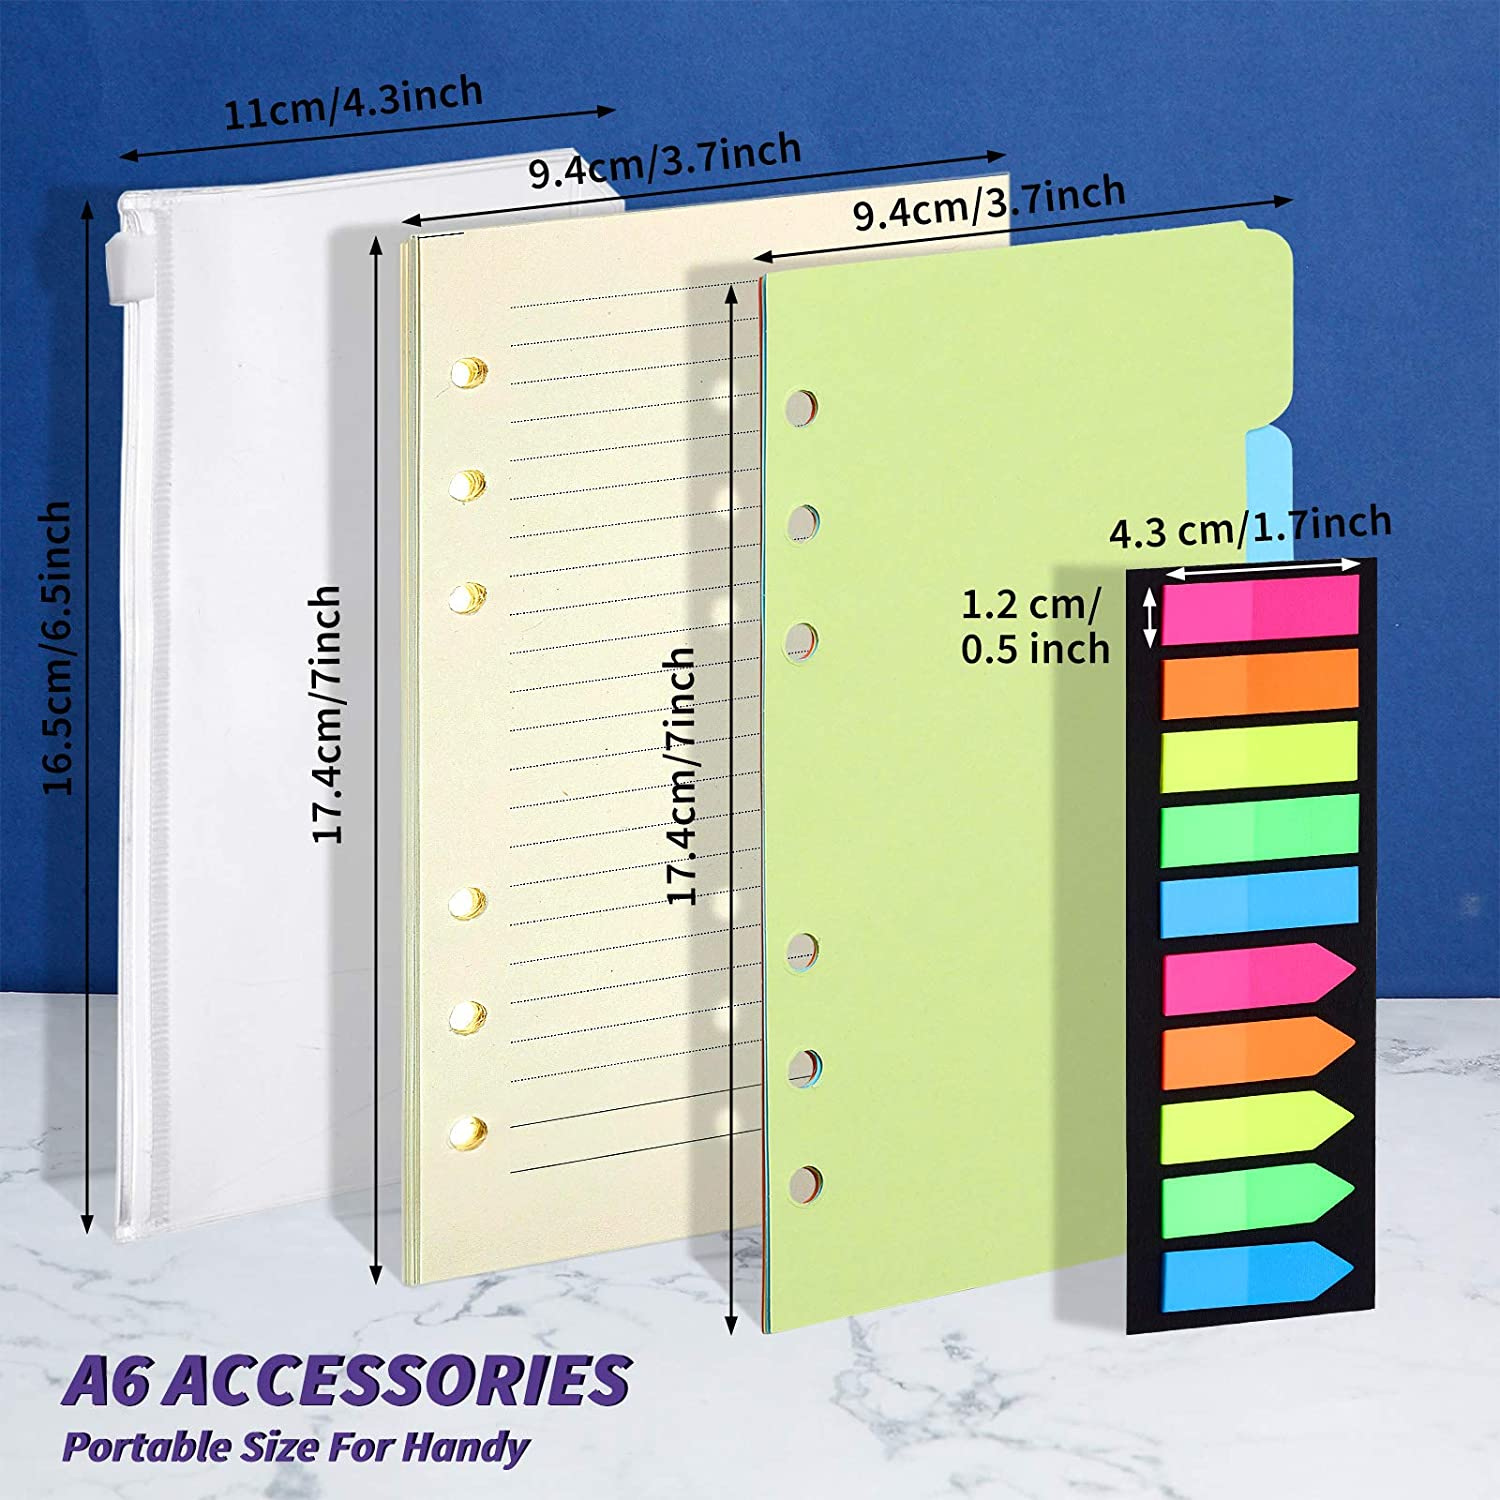 A6 PU Leather Notebook Binder Magnetic 6 Round Ring Binder Cover Zipper Folder Set 10 Pieces A6 Size 6 Holes Binder Pockets with 2 Refillable A6 Loose Leaf Paper and 200 Neon Page Markers and Dividers